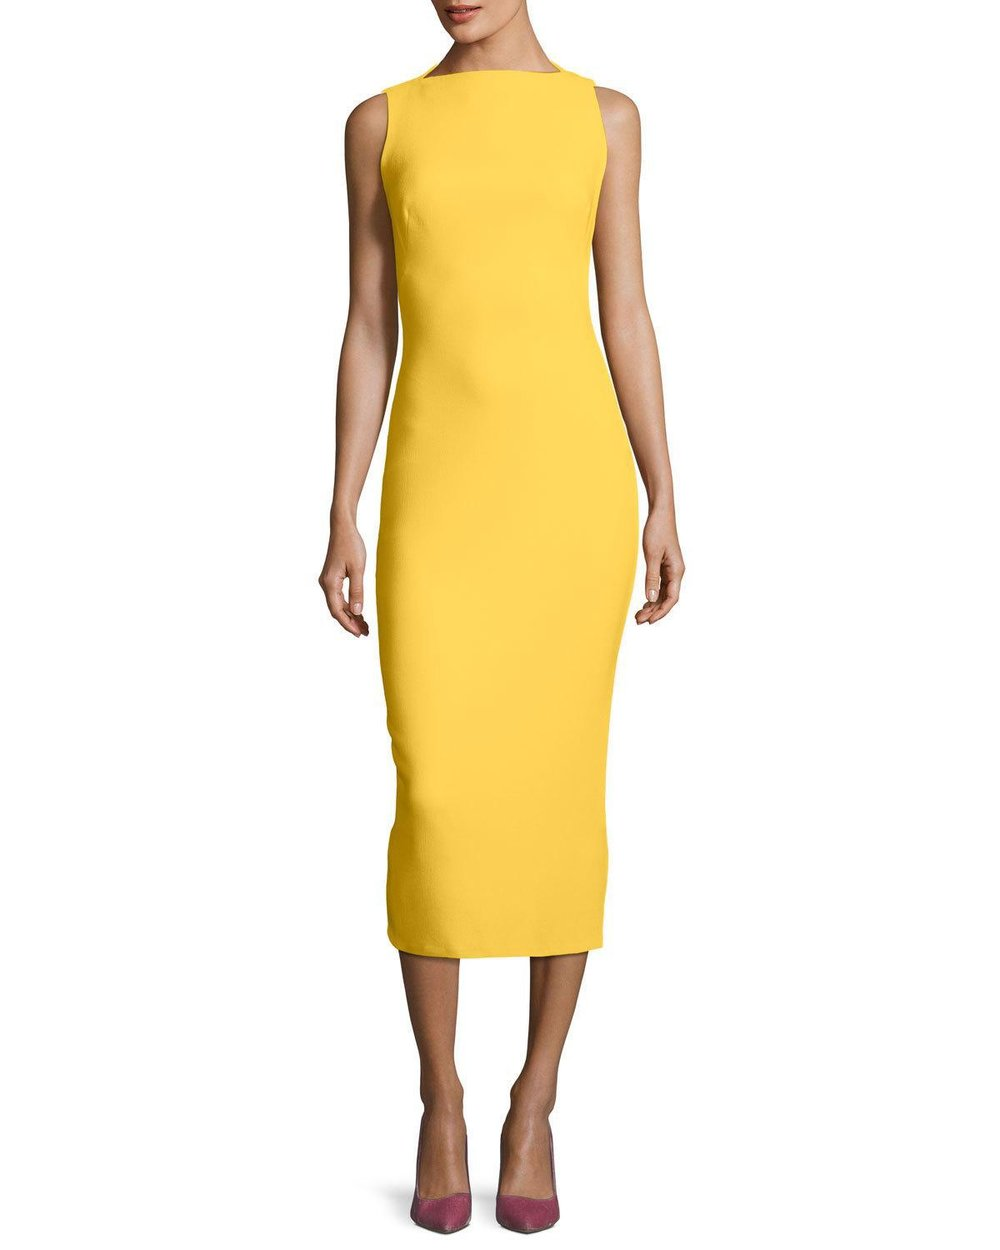 brandon-maxwell-YELLOW-Sleeveless-Boat-neck-Double-face-Crepe-Sheath-Midi-Dress.jpeg